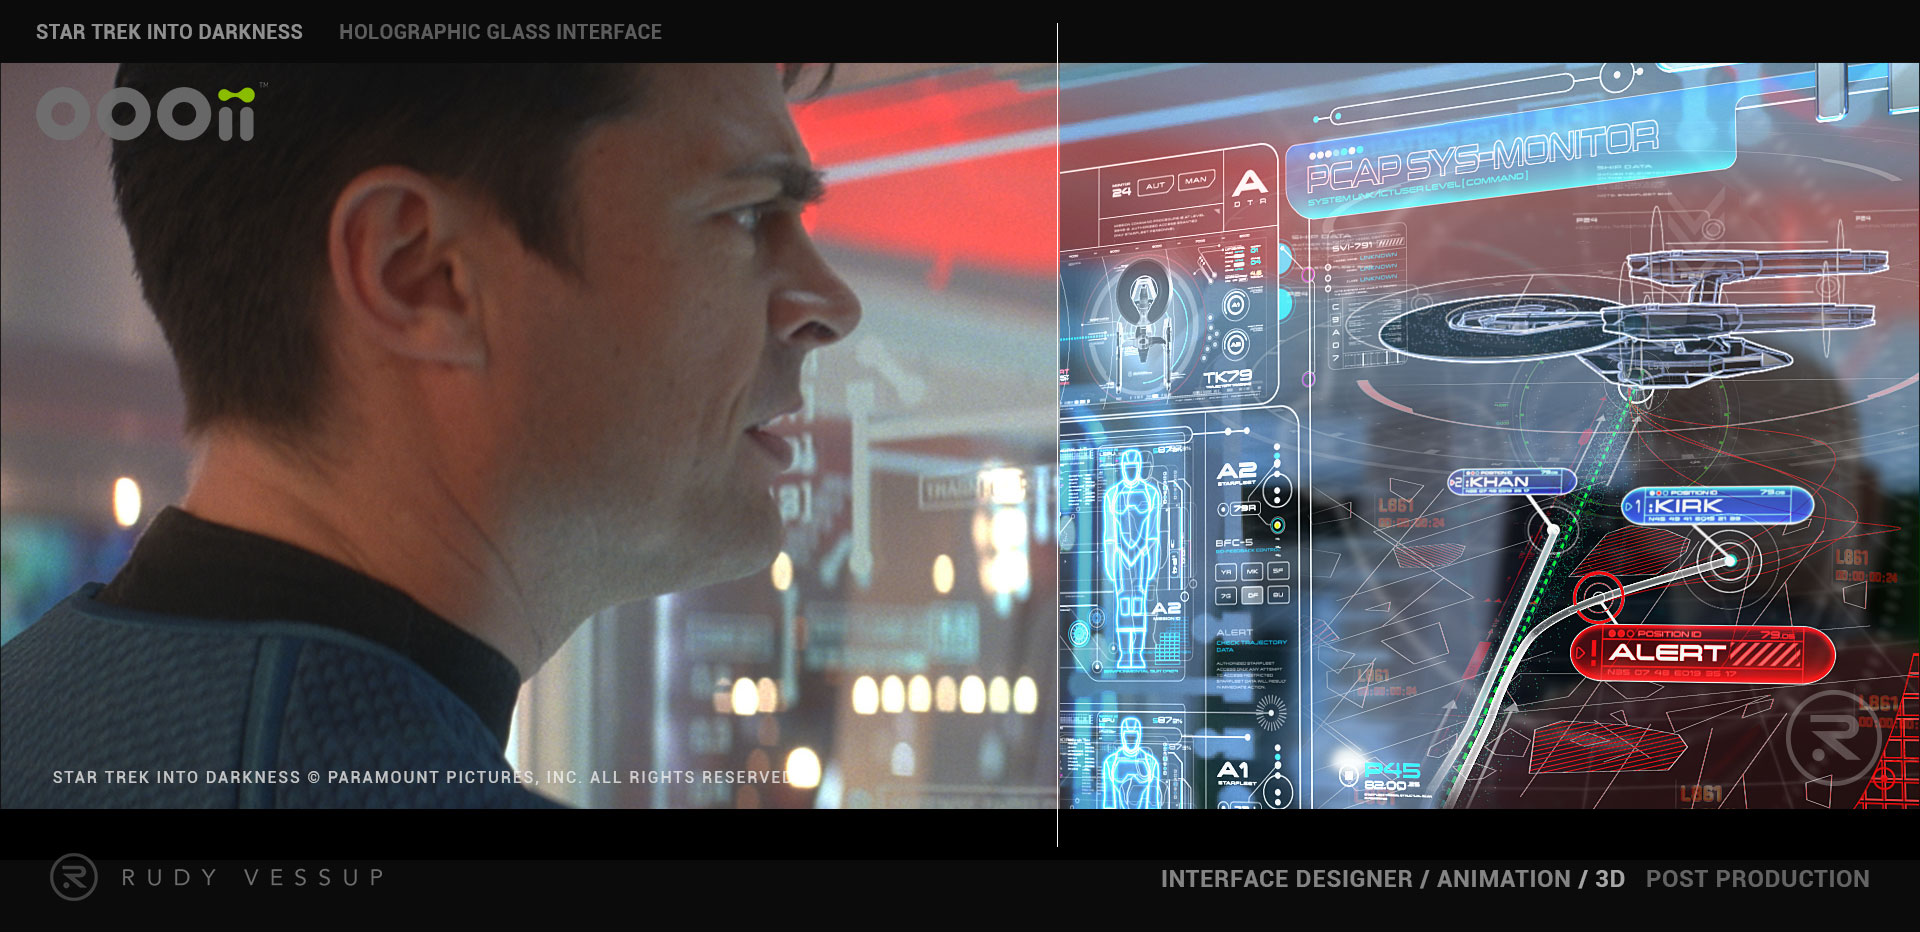 startrek_holo_glass_interface_design.jpg